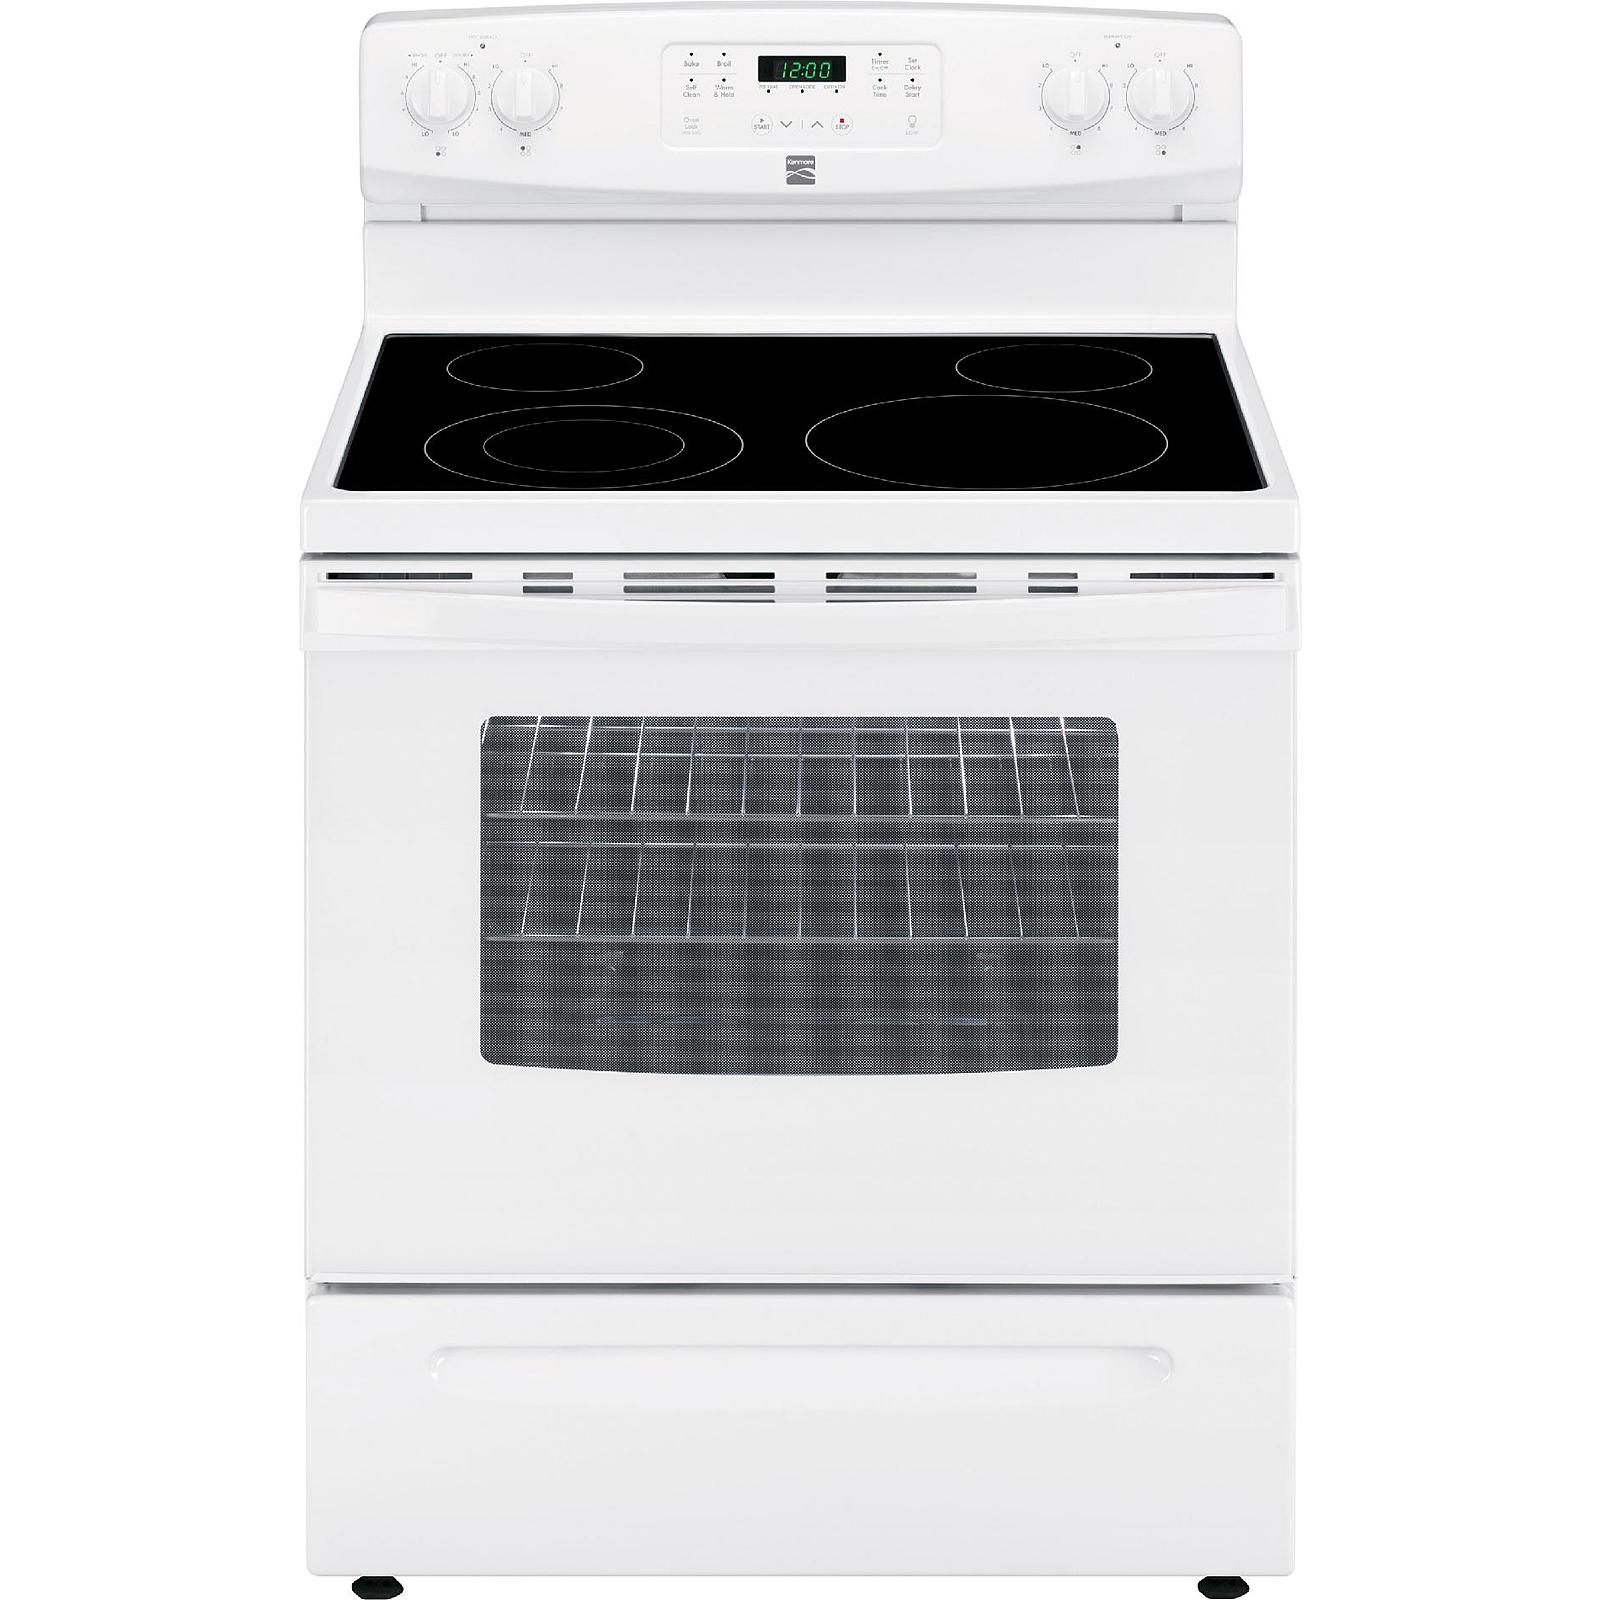 94172-5-3-cu-ft-Self-Cleaning-Electric-Range-White